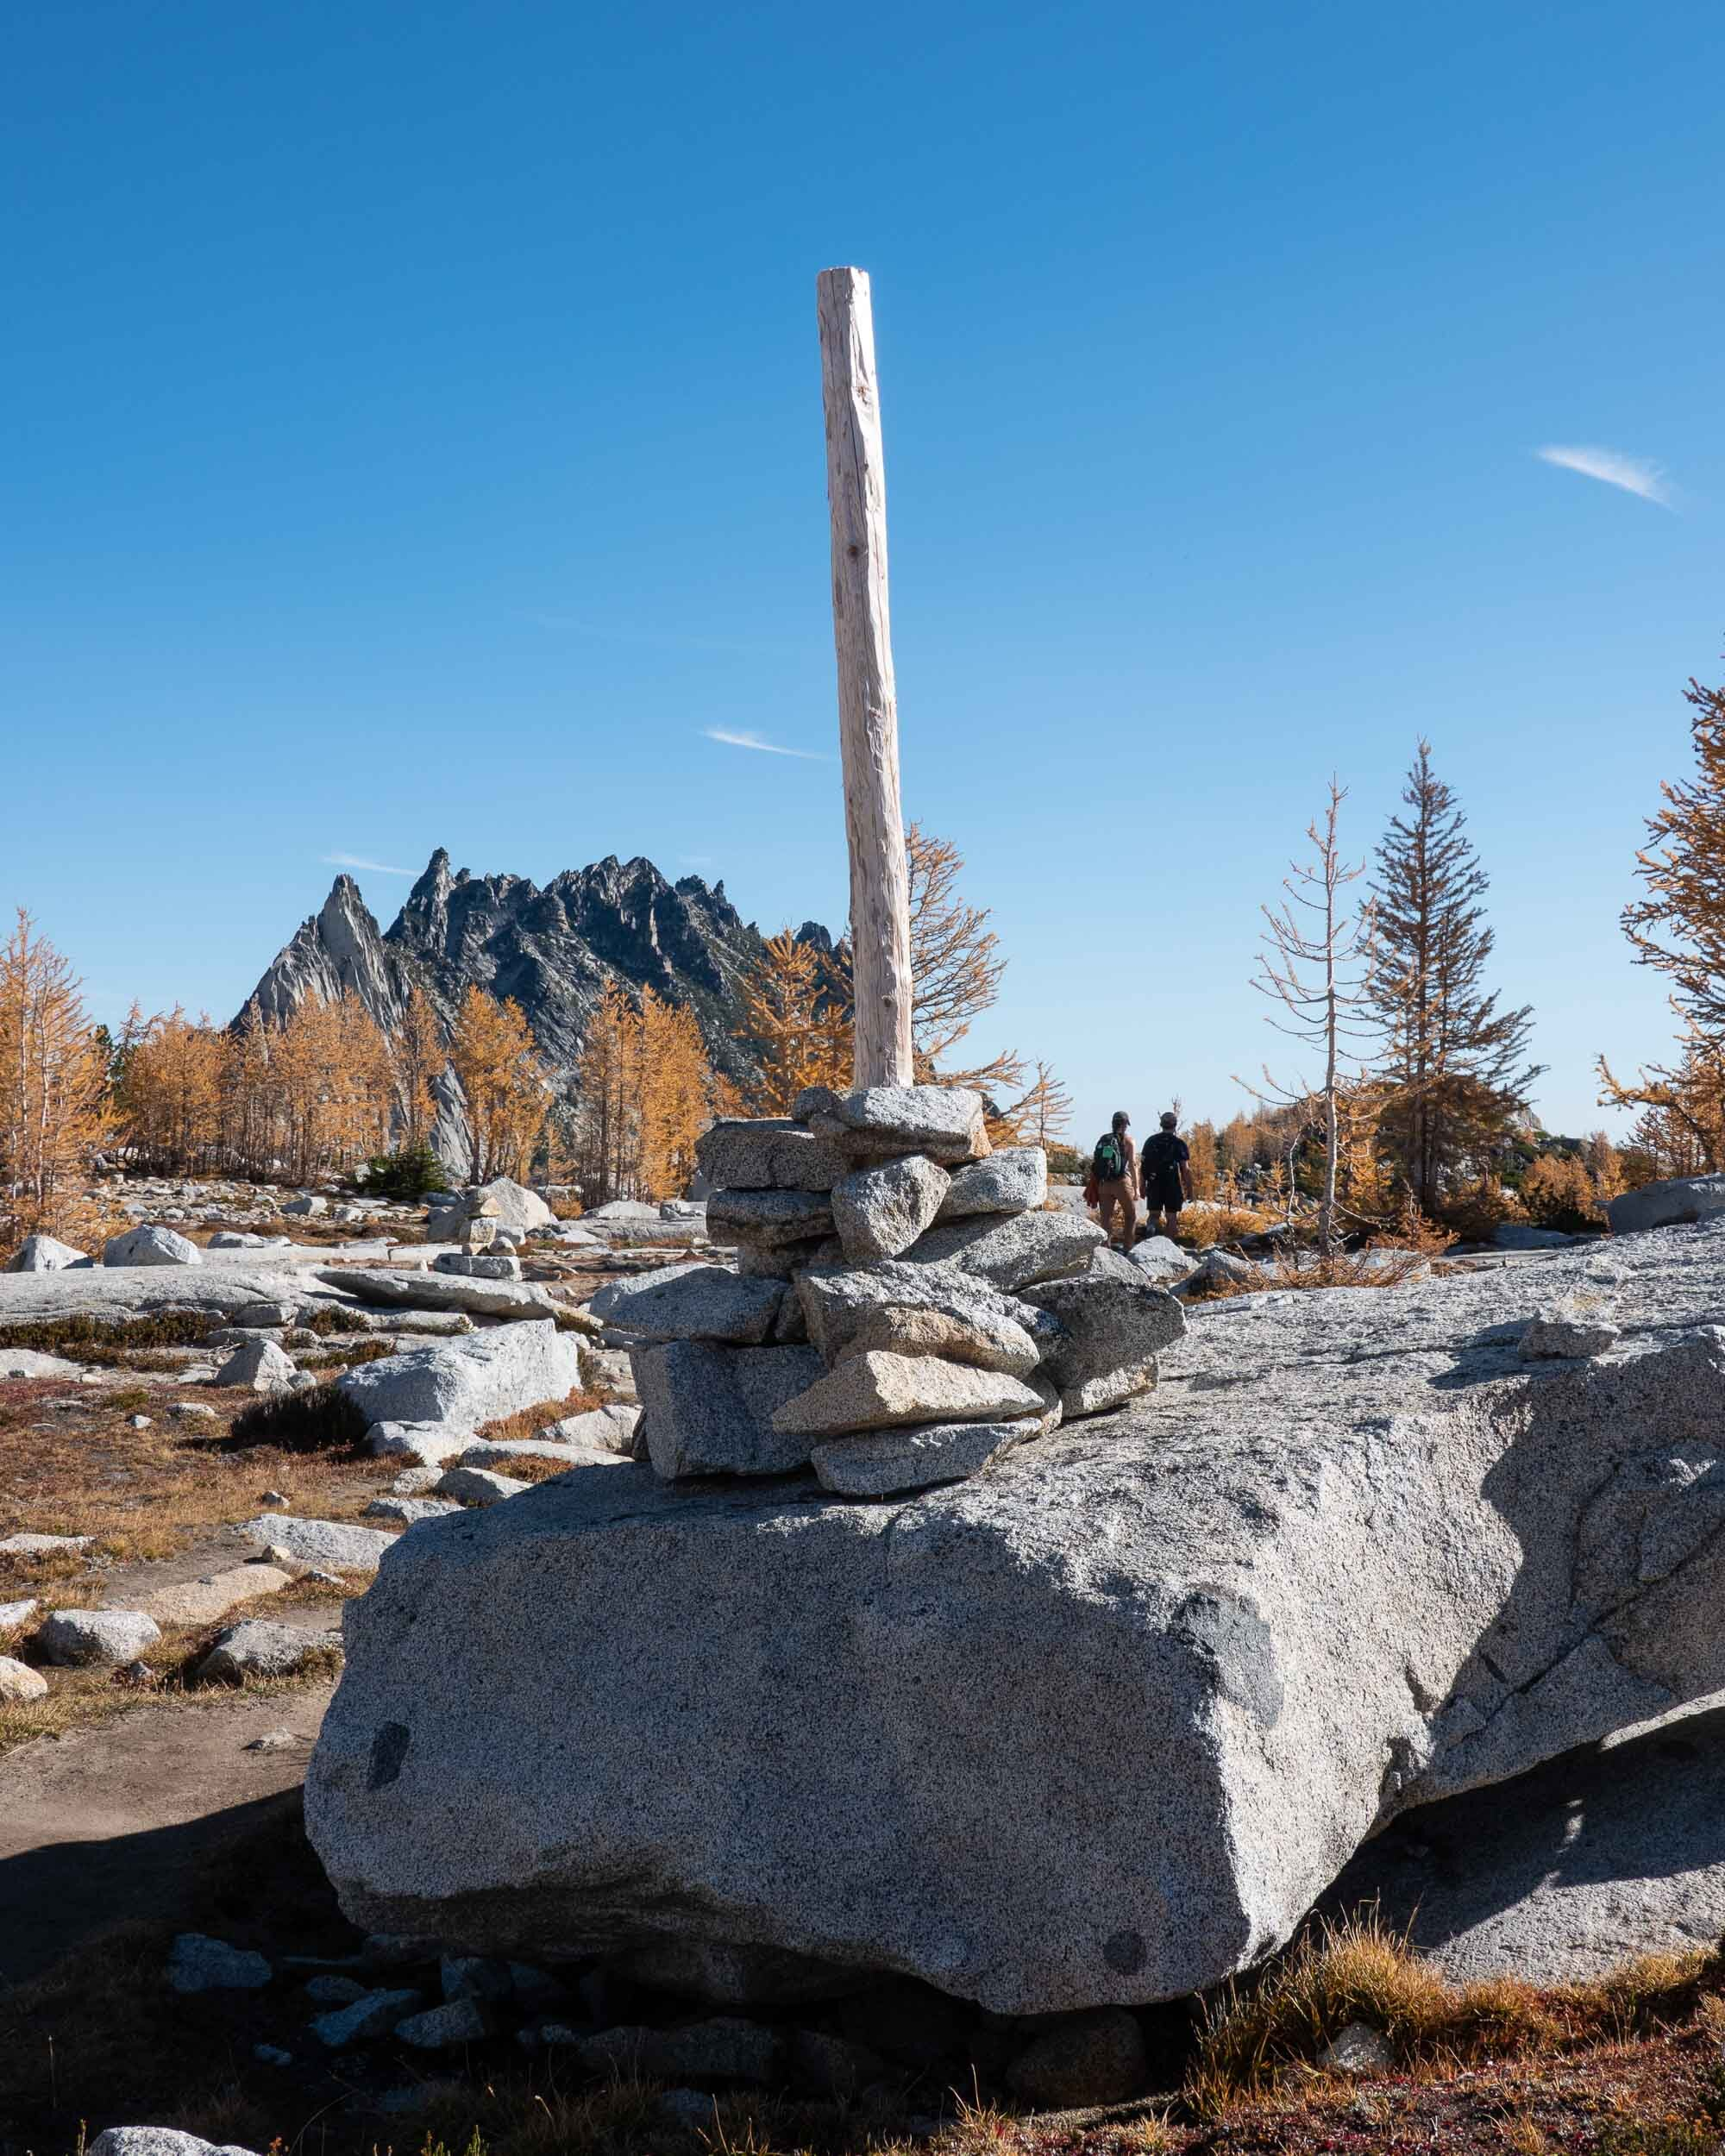 Rock cairns mark the trail through large portions of The Core Enchantments.